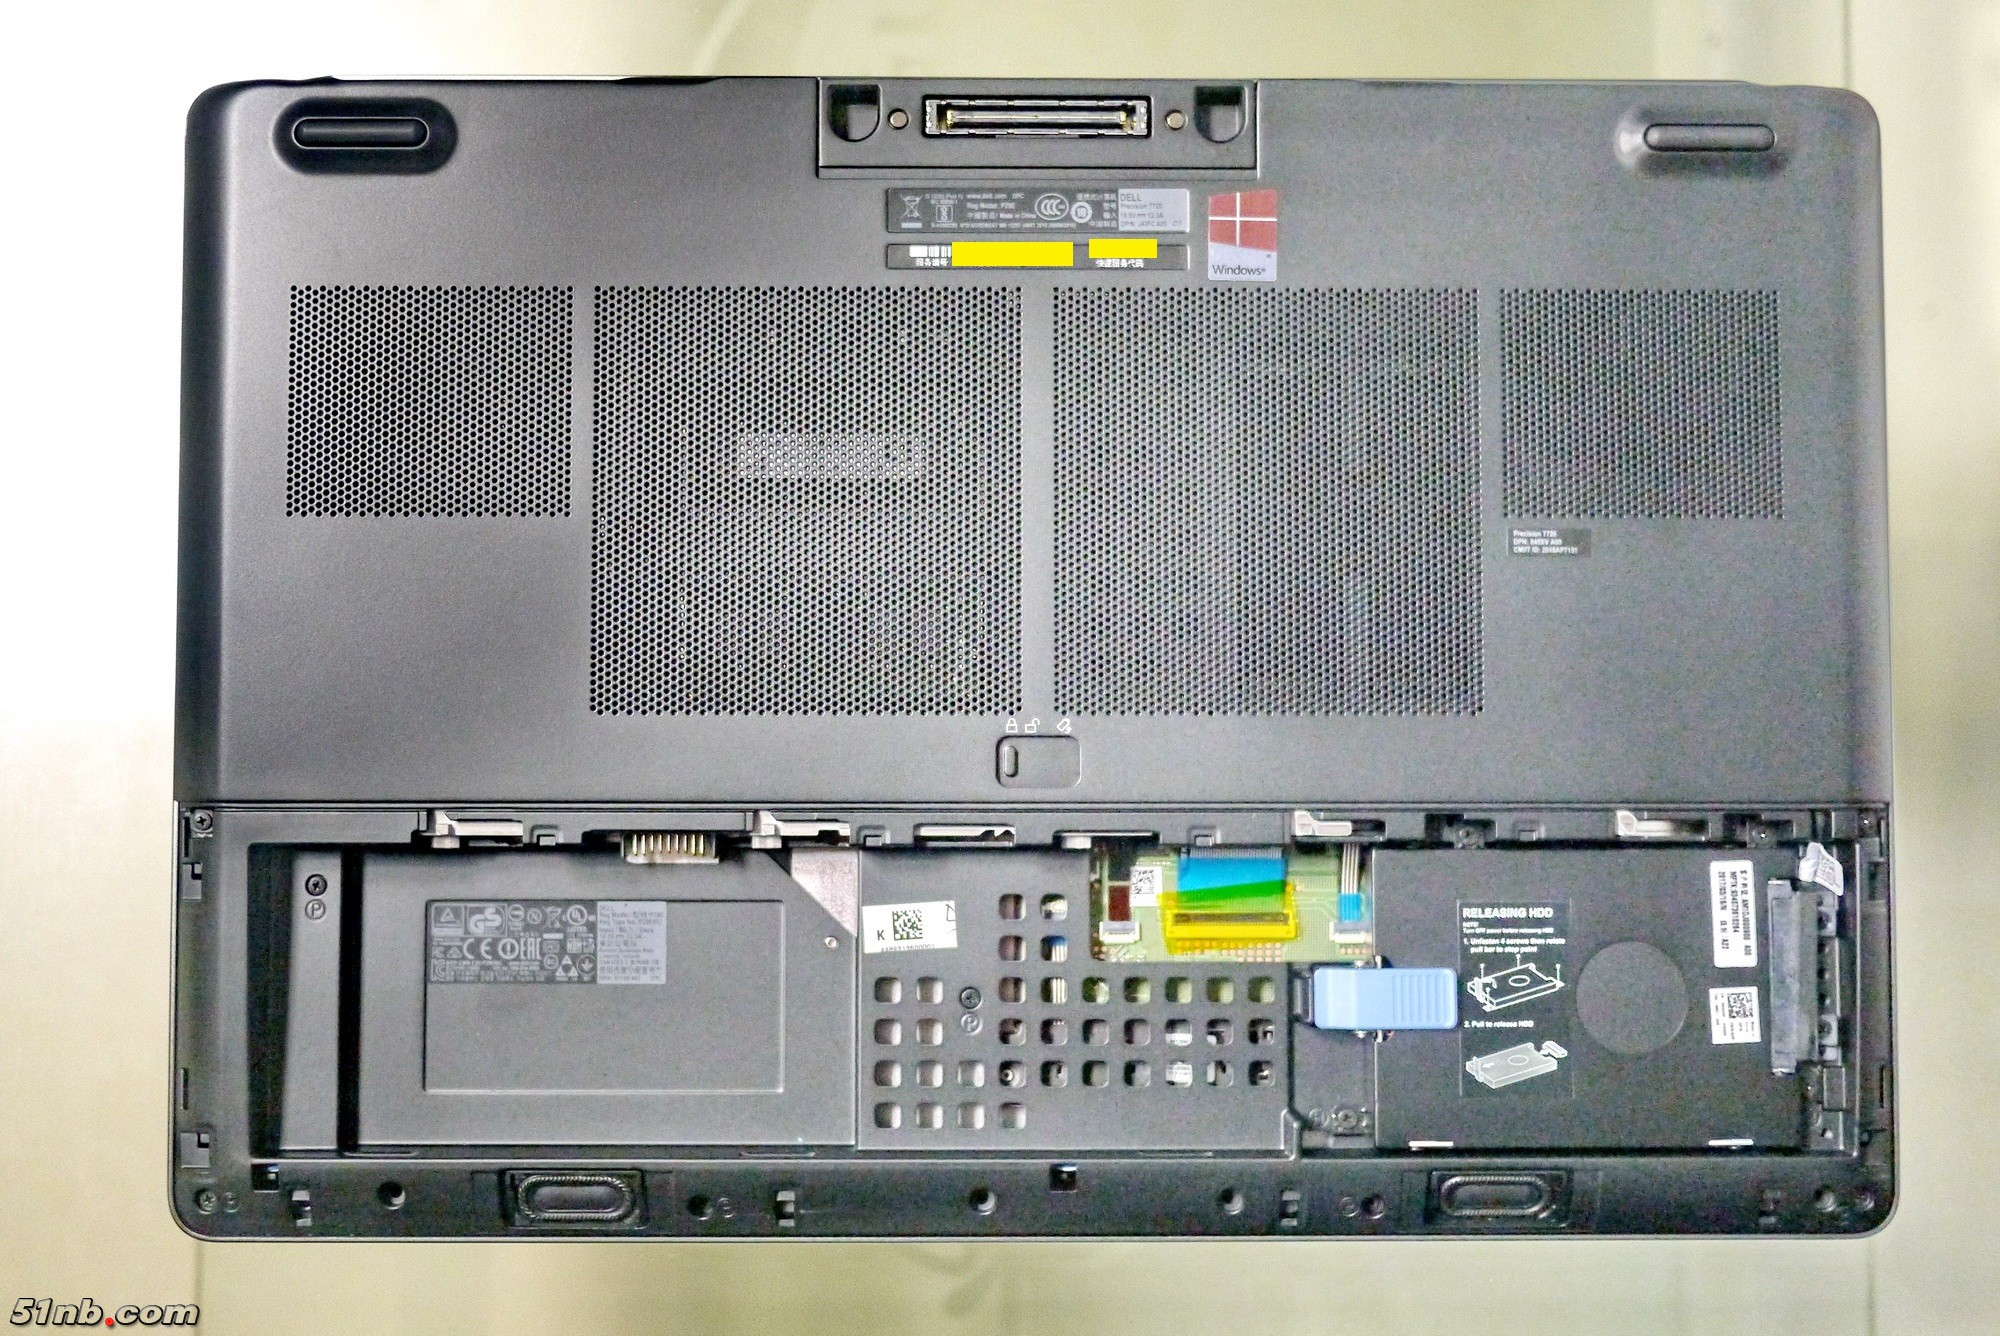 Dell Precision 7720 Disassembly And Ssd Ram Upgrade Guide Diagram In Addition Lcd Industrial Control Panels On Laptop Now You Can See The 25 Inch Hard Disk Bay Several Sets Of Cables Left